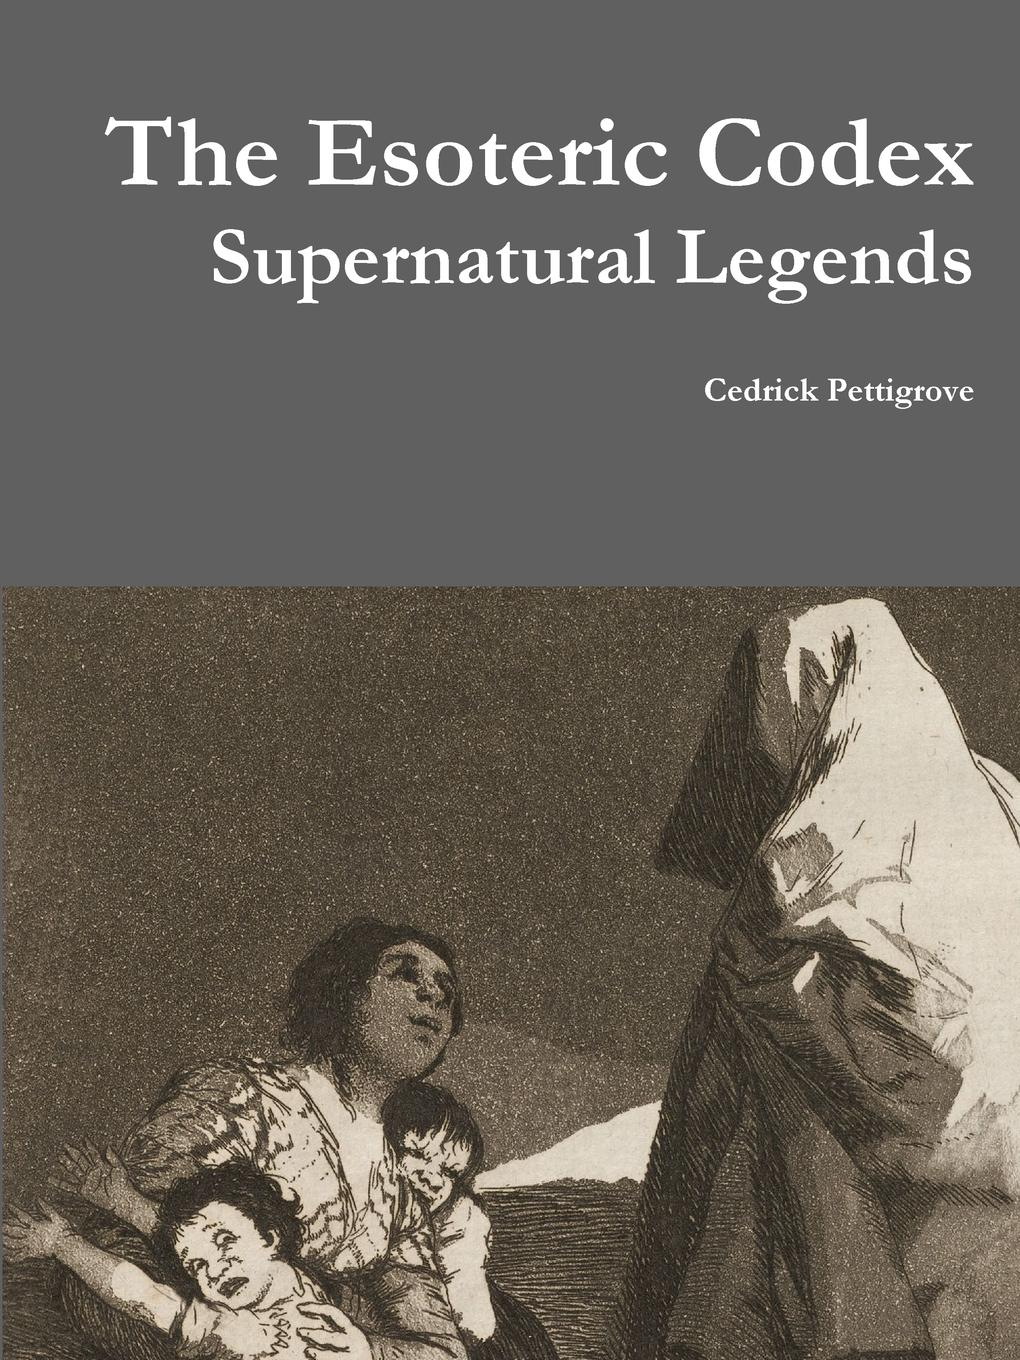 Фото - Cedrick Pettigrove The Esoteric Codex. Supernatural Legends смоки робинсон the miracles soul legends smokey robinson